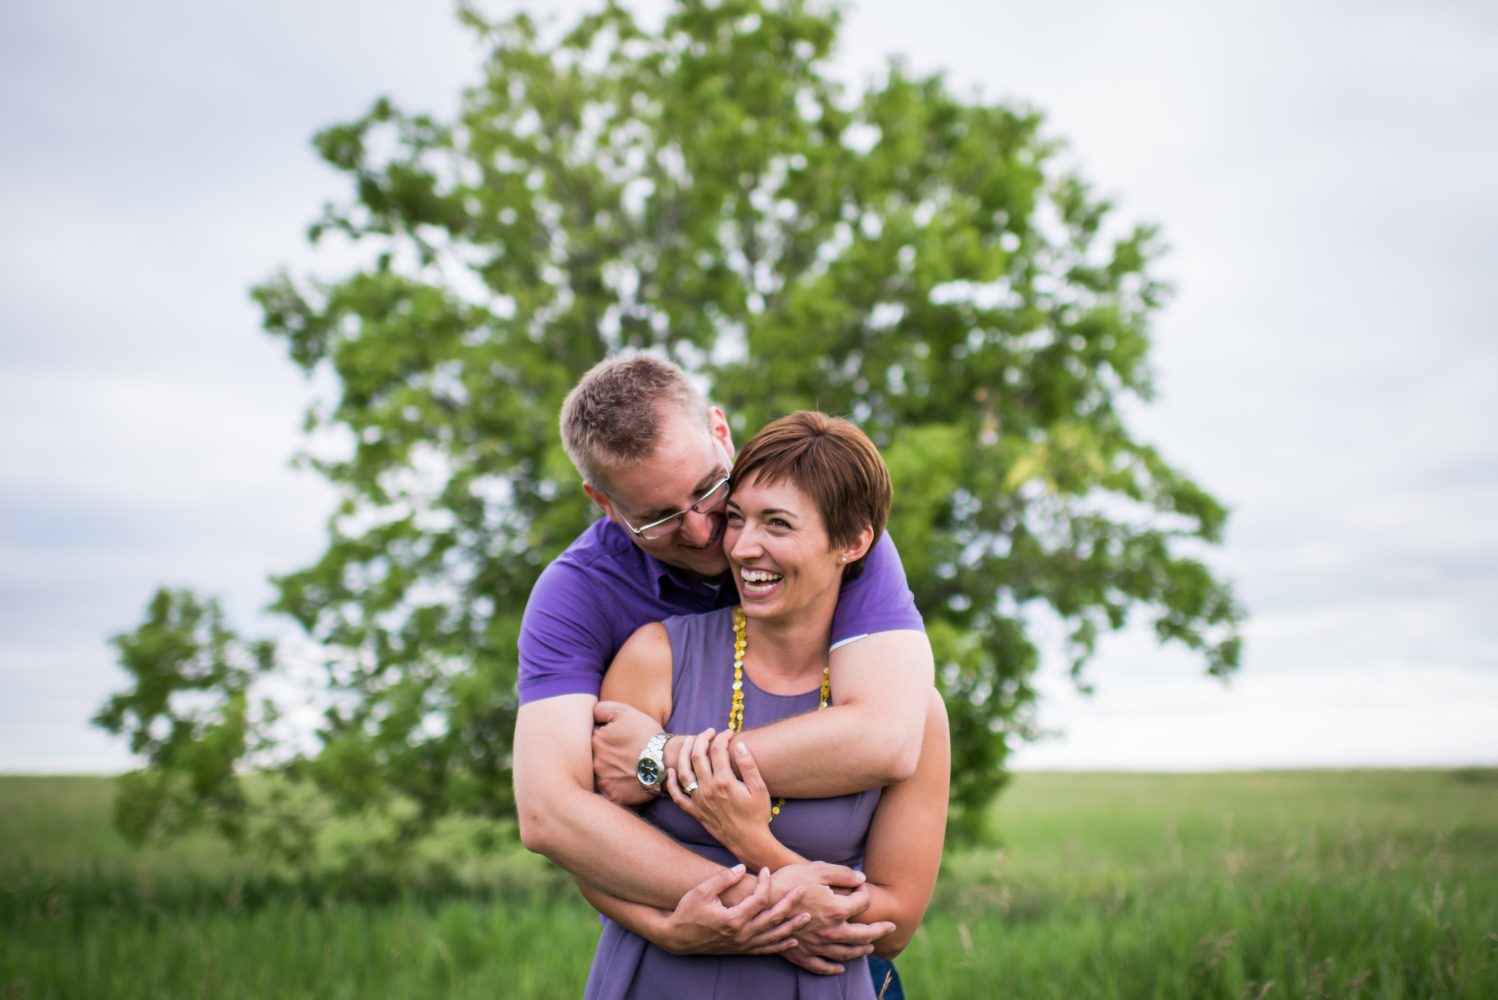 Nose hill park with an epic tree and a couple in love engagement session | 3Haus Photographics